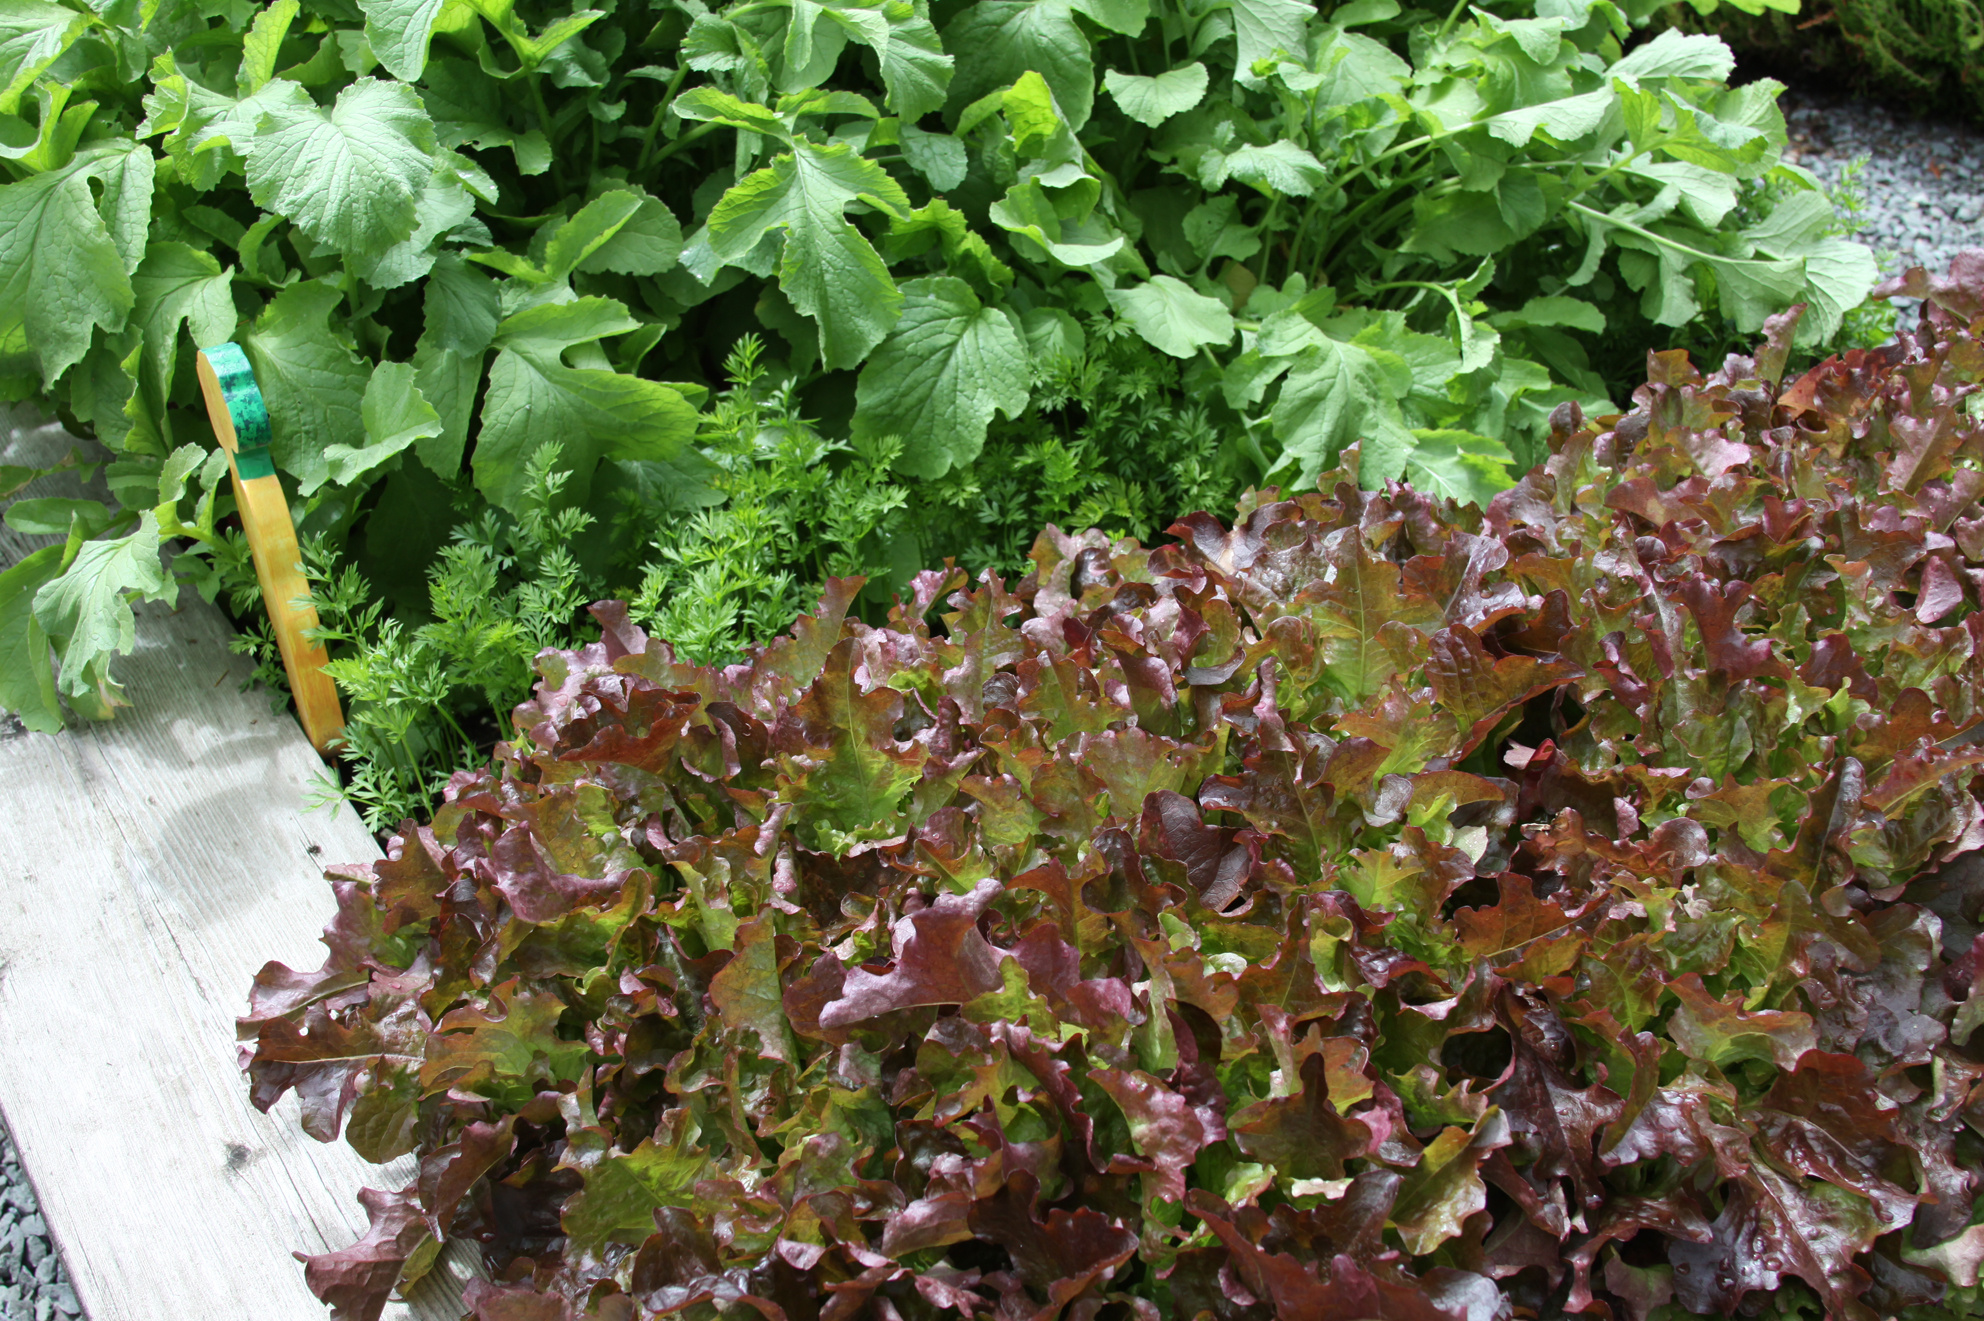 Time is now to plant lettuce, other root crops | The Spokesman-Review